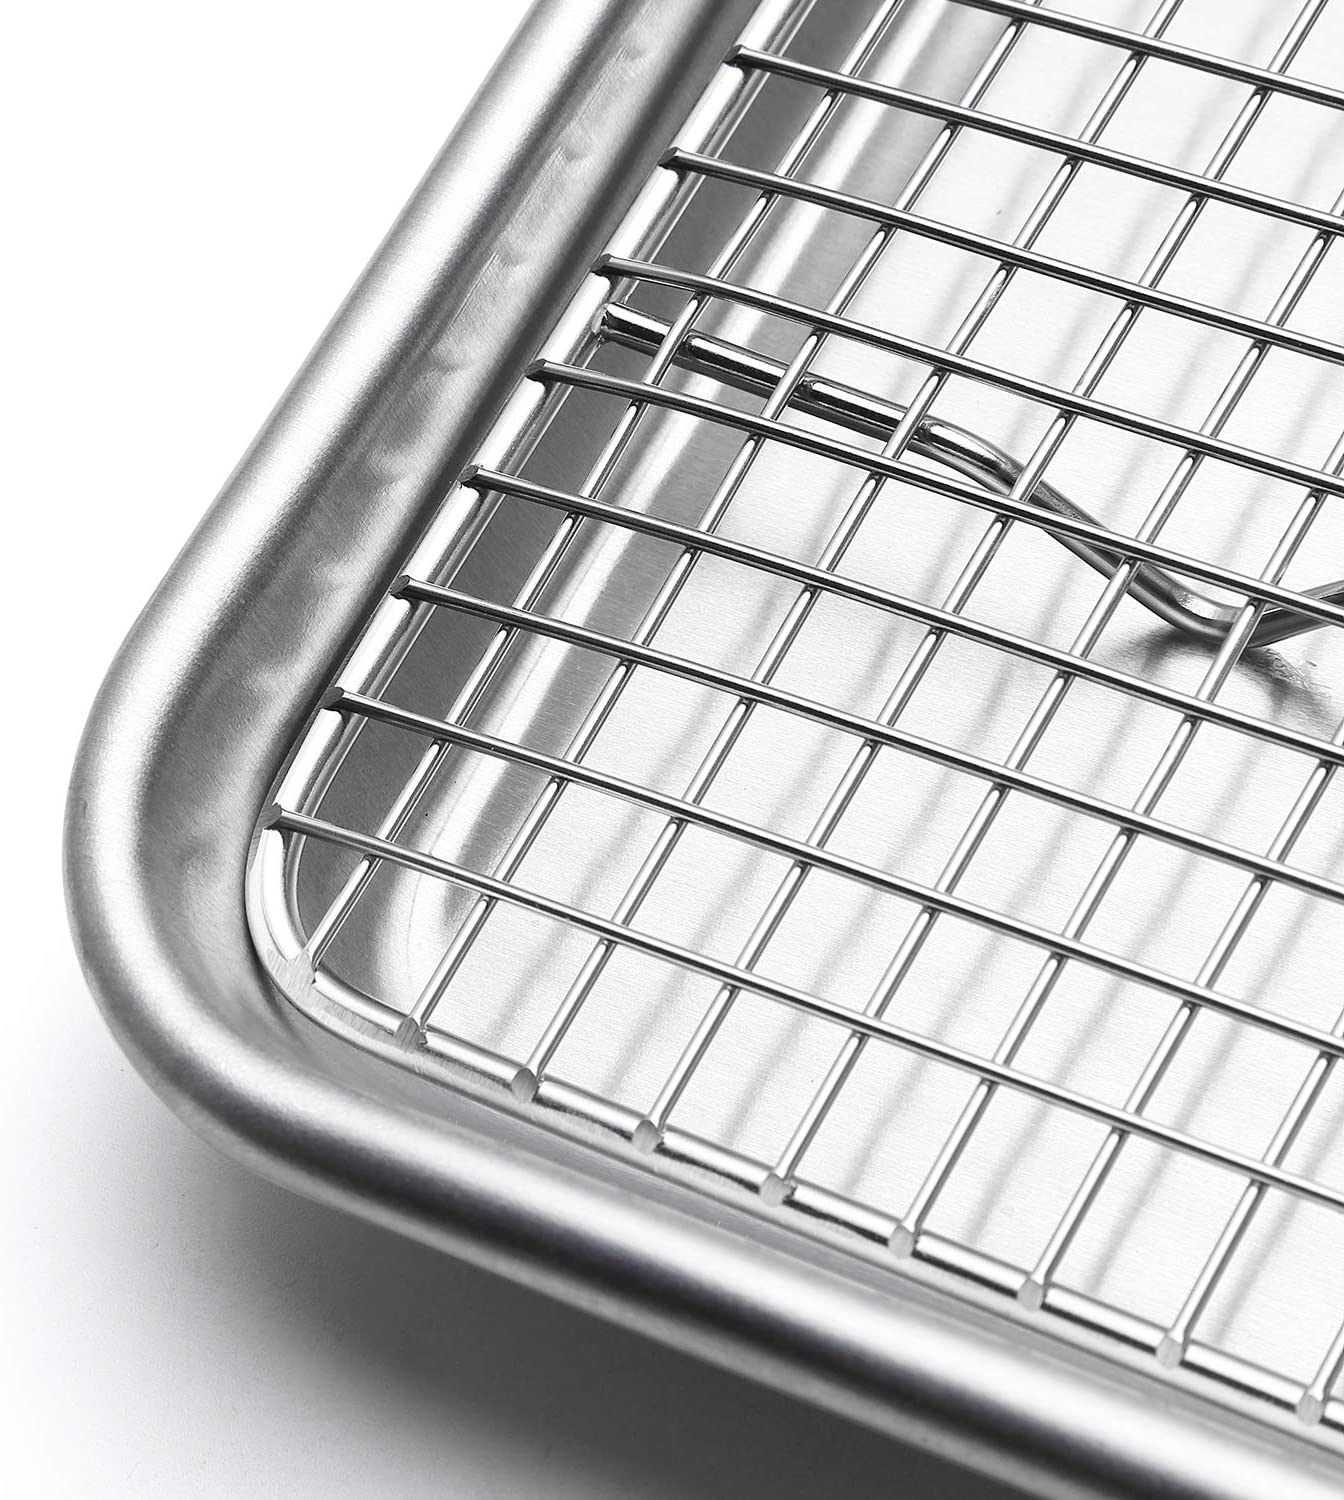 Spring Chef 100/% Heavy Duty Stainless Steel Baking Rack /& Cooling Rack Fits Jelly Roll Pan 10x15 Inches Set of 2 Oven Safe